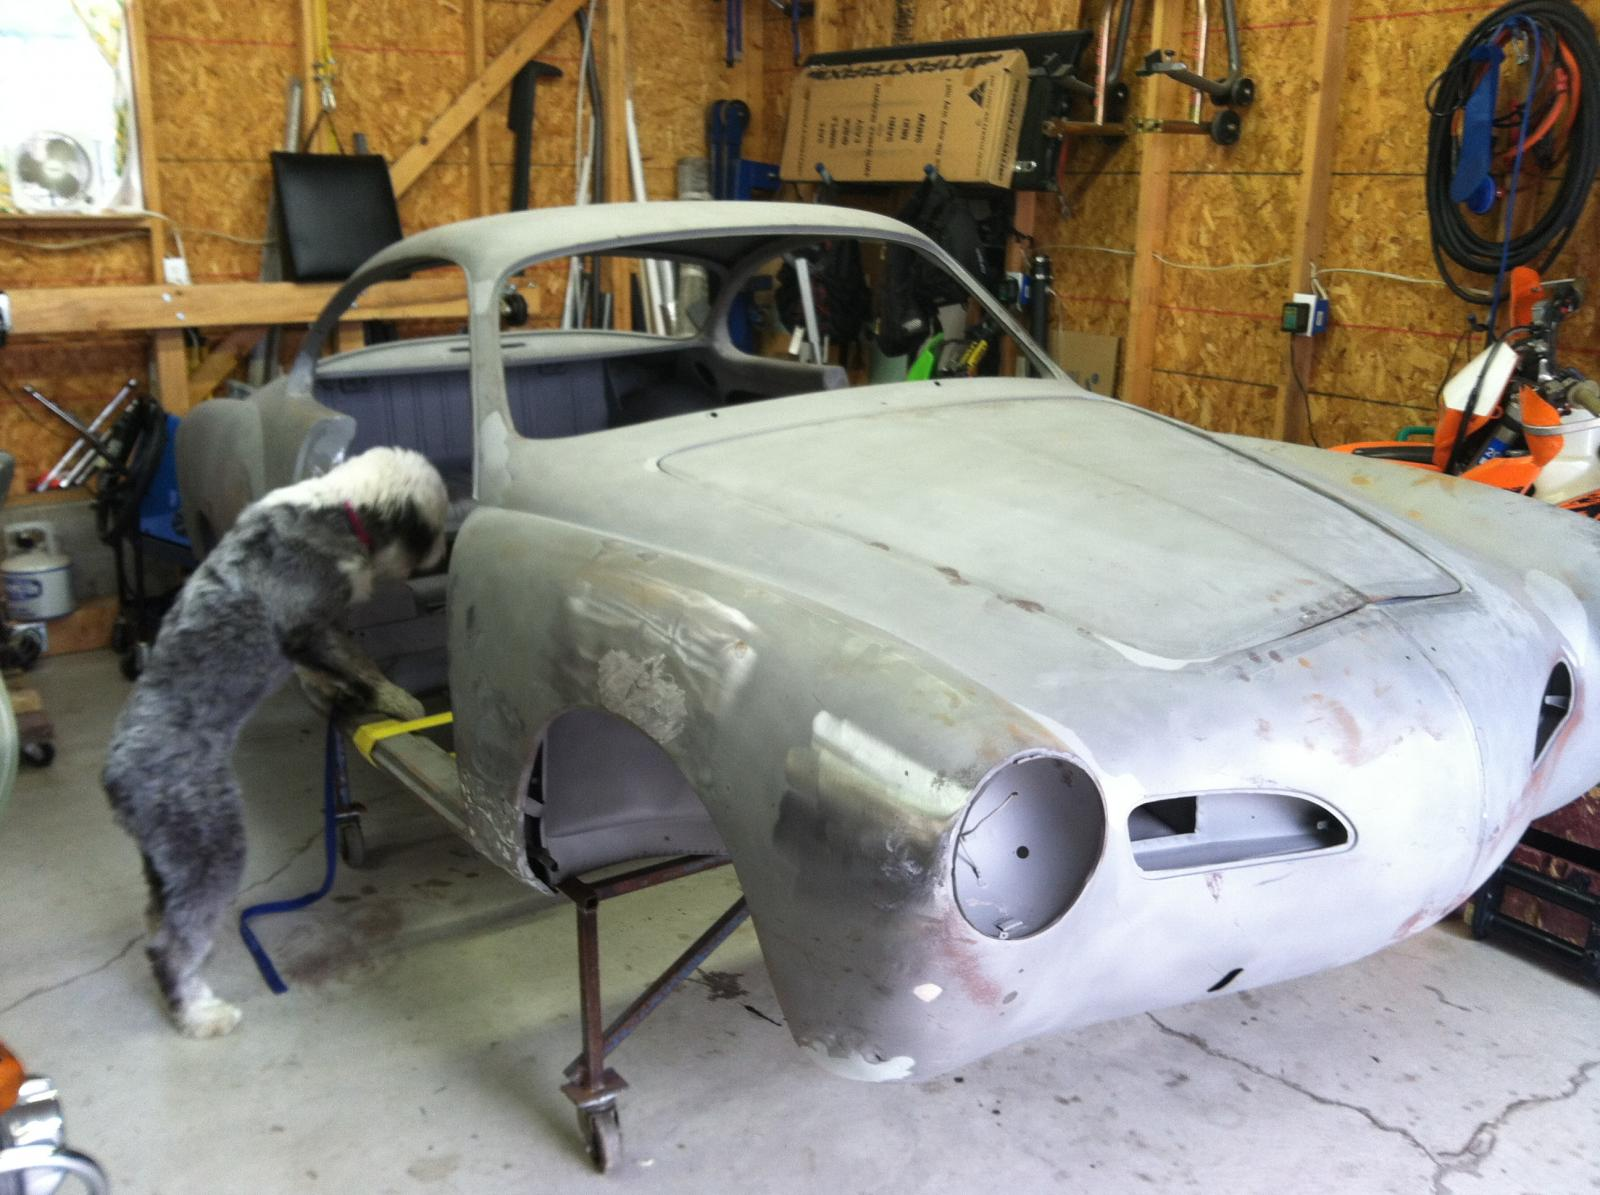 thesamba com ghia view topic 1960 karmann ghia restoration image have been reduced in size click image to view fullscreen